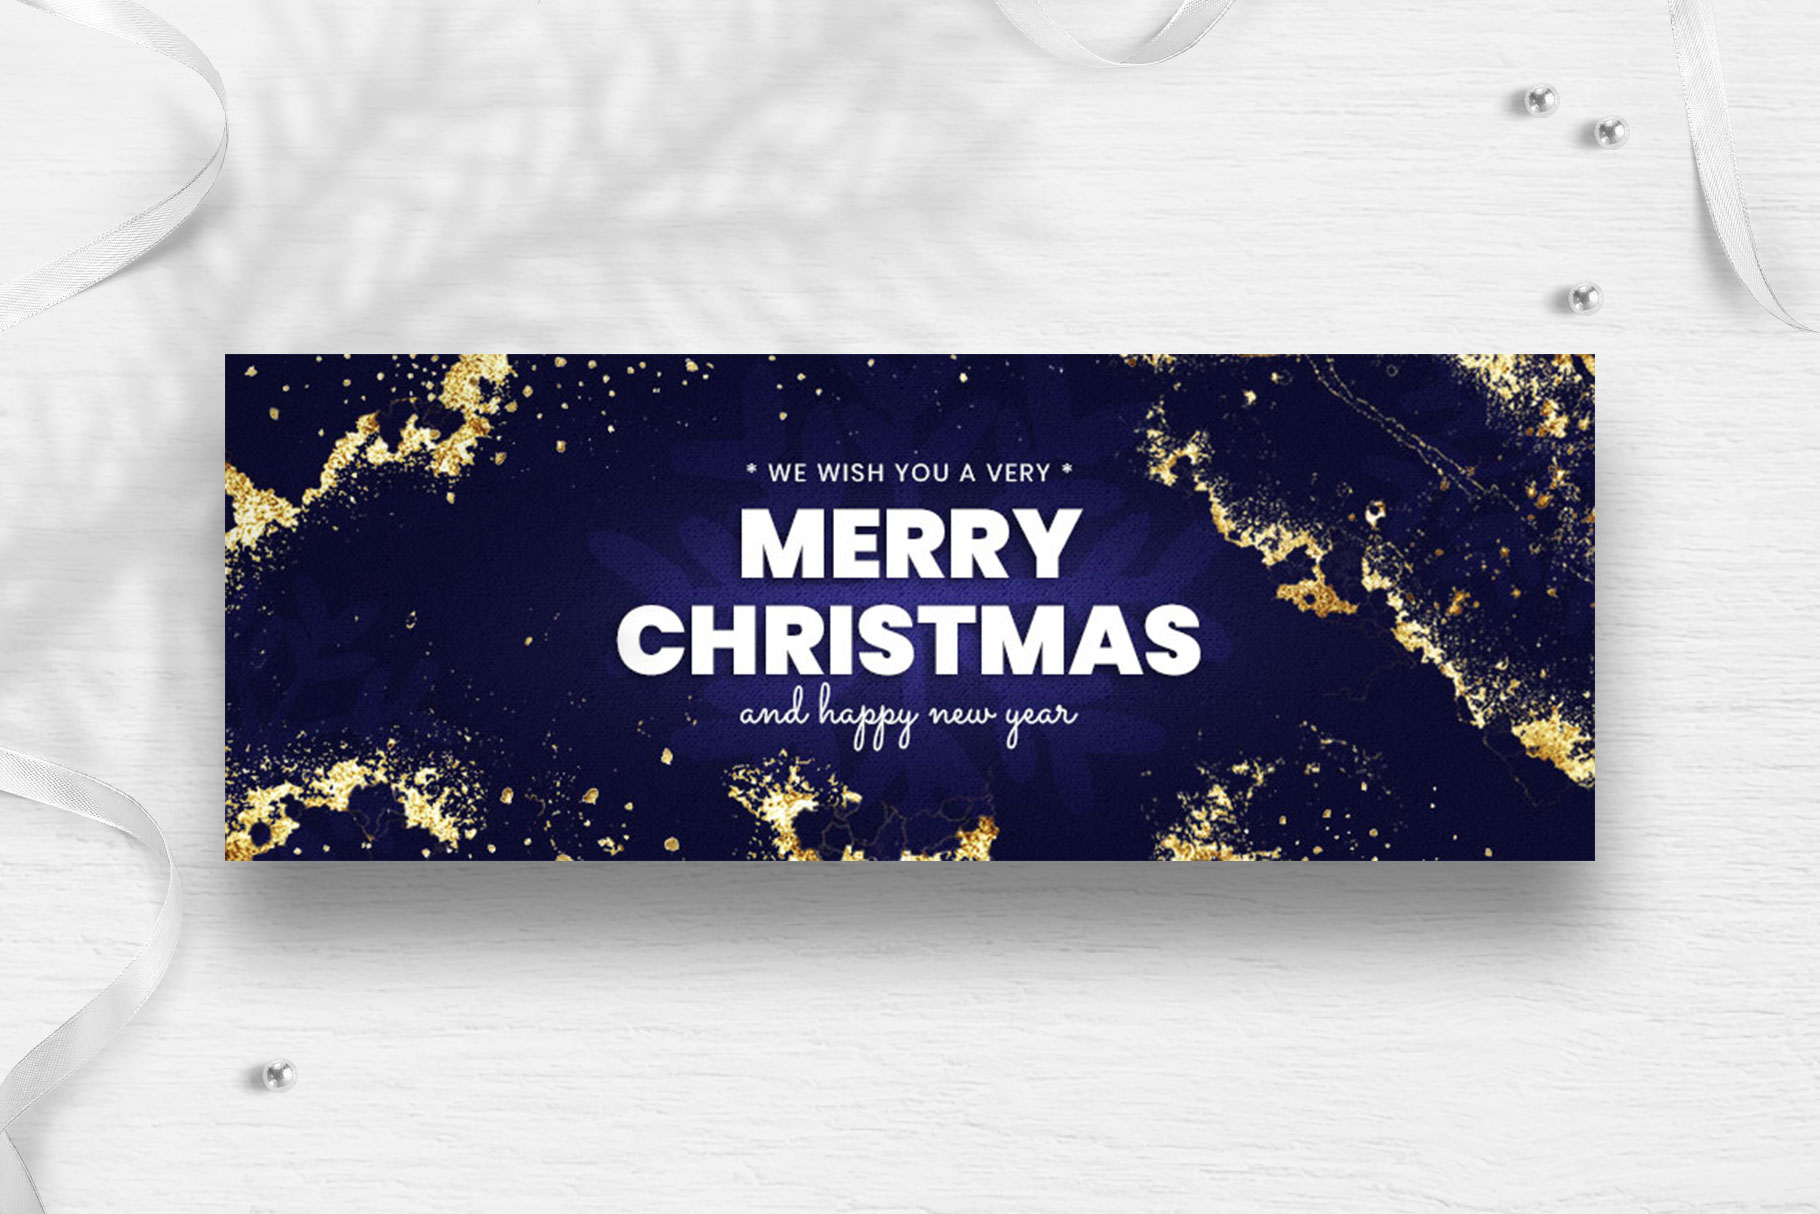 Merry Christmas Facebook Cover Template example image 2